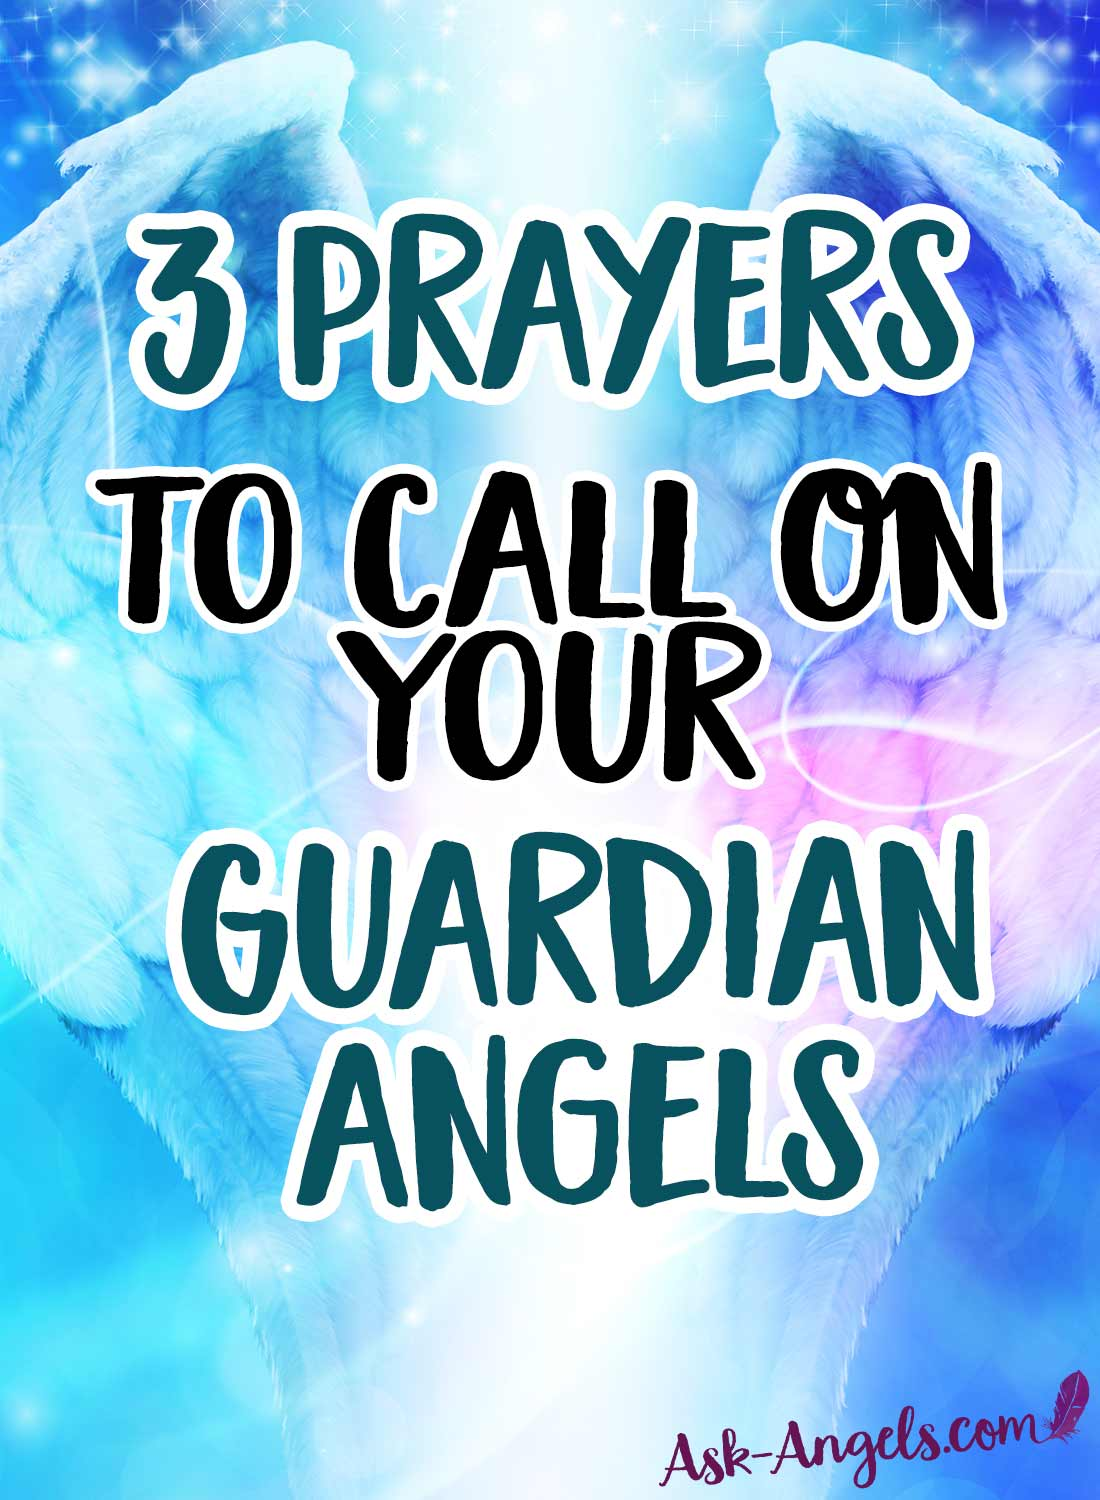 3 Prayers to Call On Your Guardian Angels